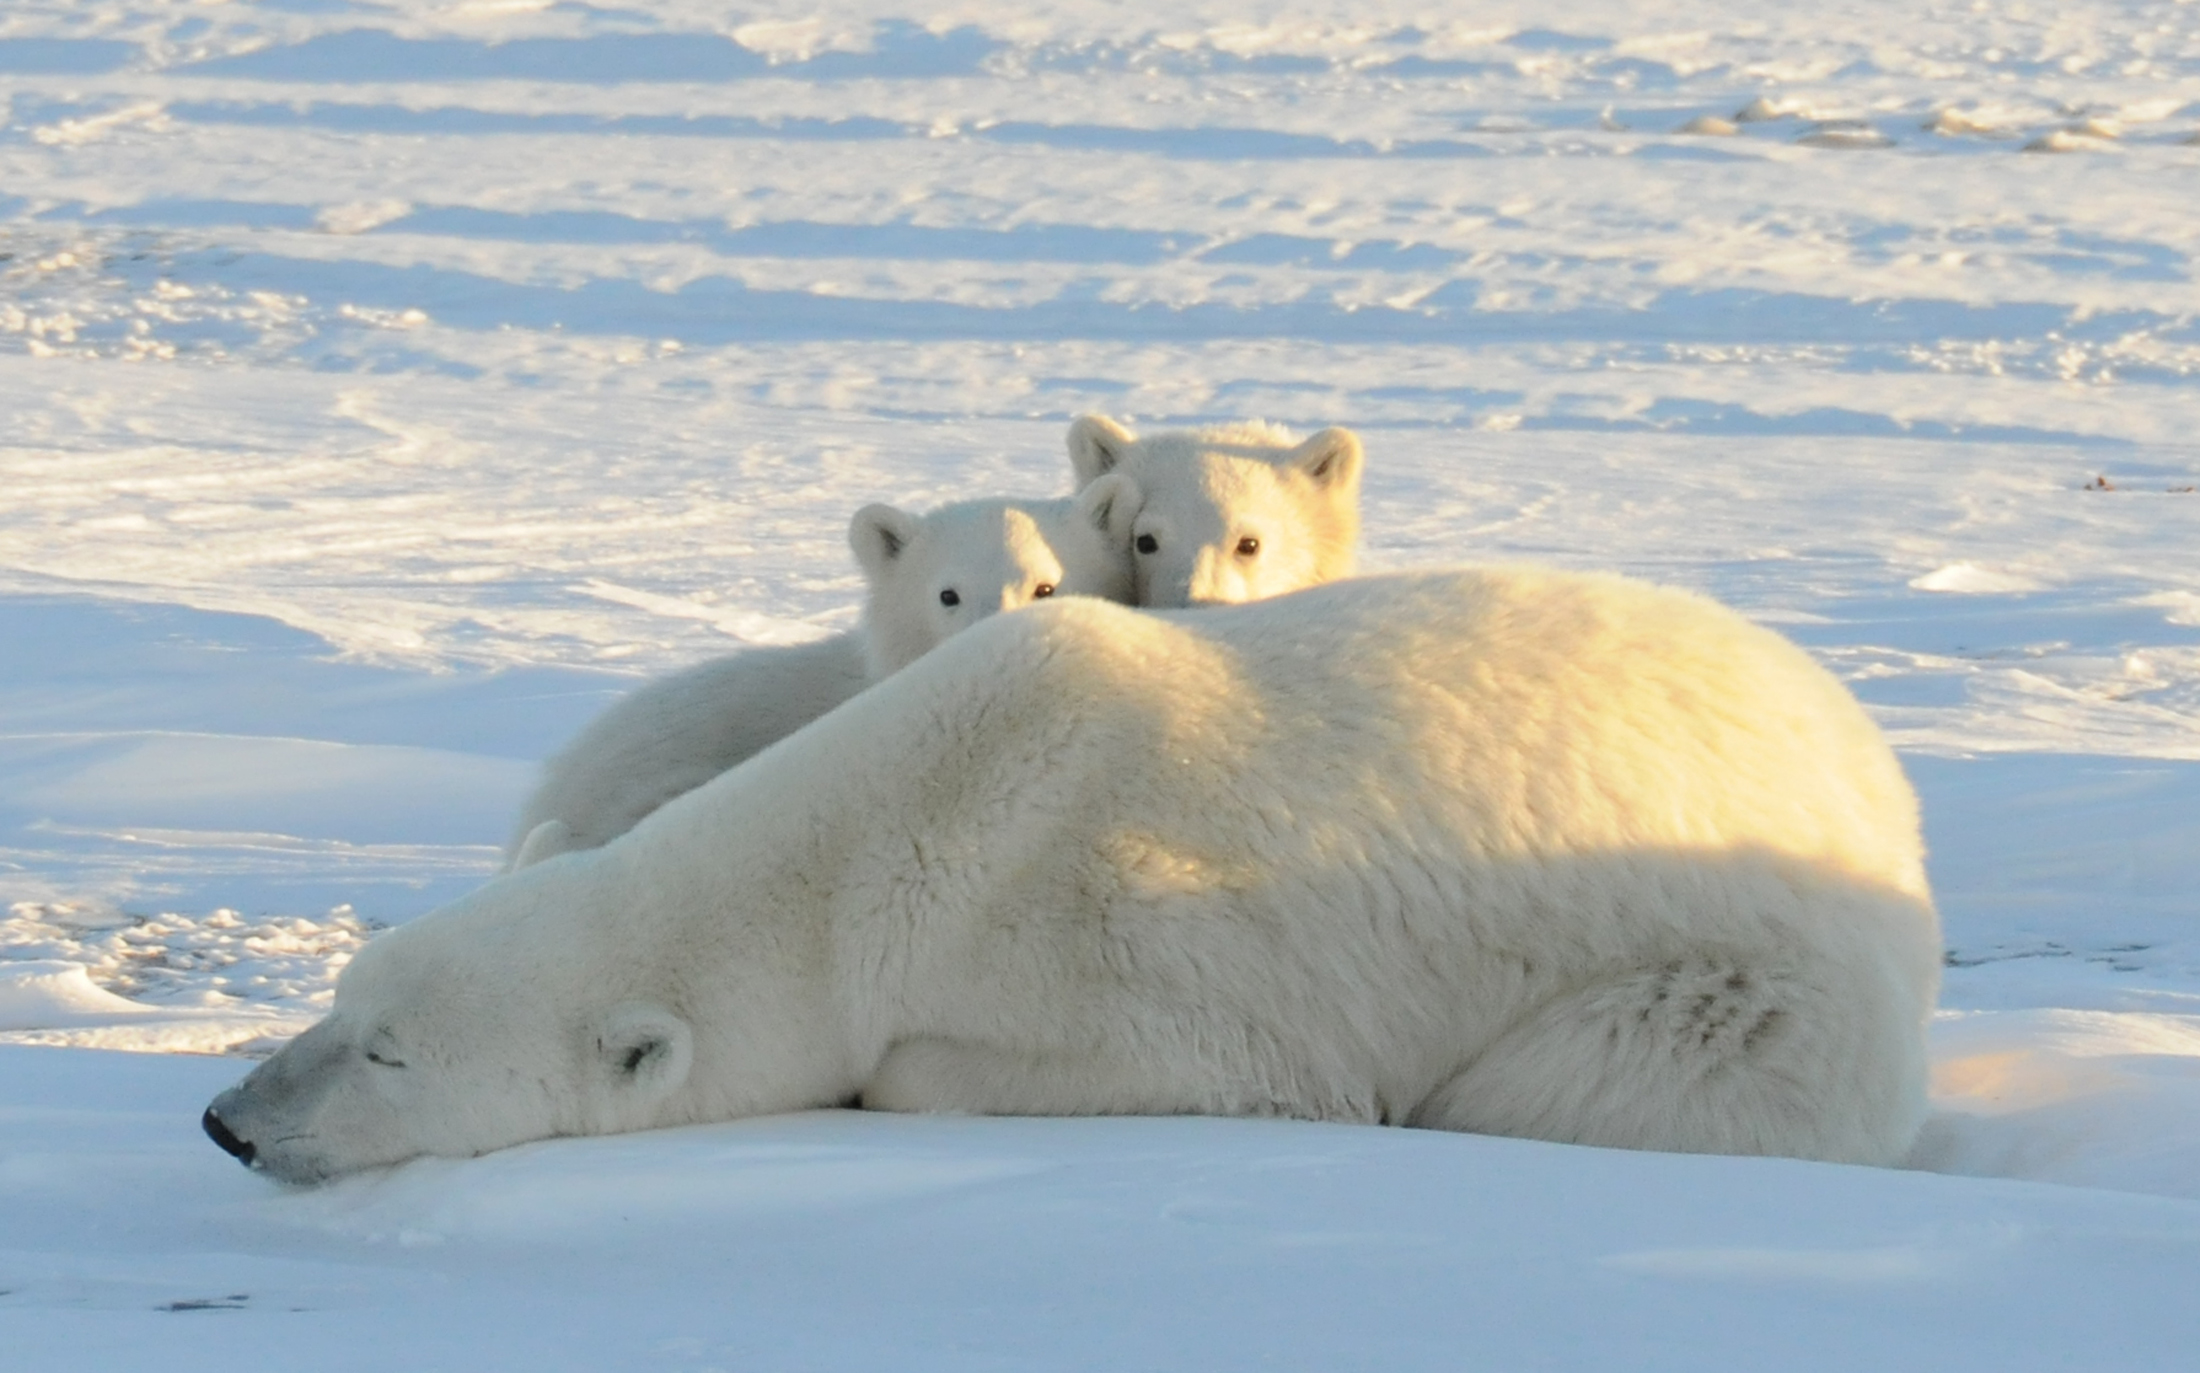 Cute Baby Polar Bear Wallpaper New Study Says Arctic Ice Melt And Extreme Weather